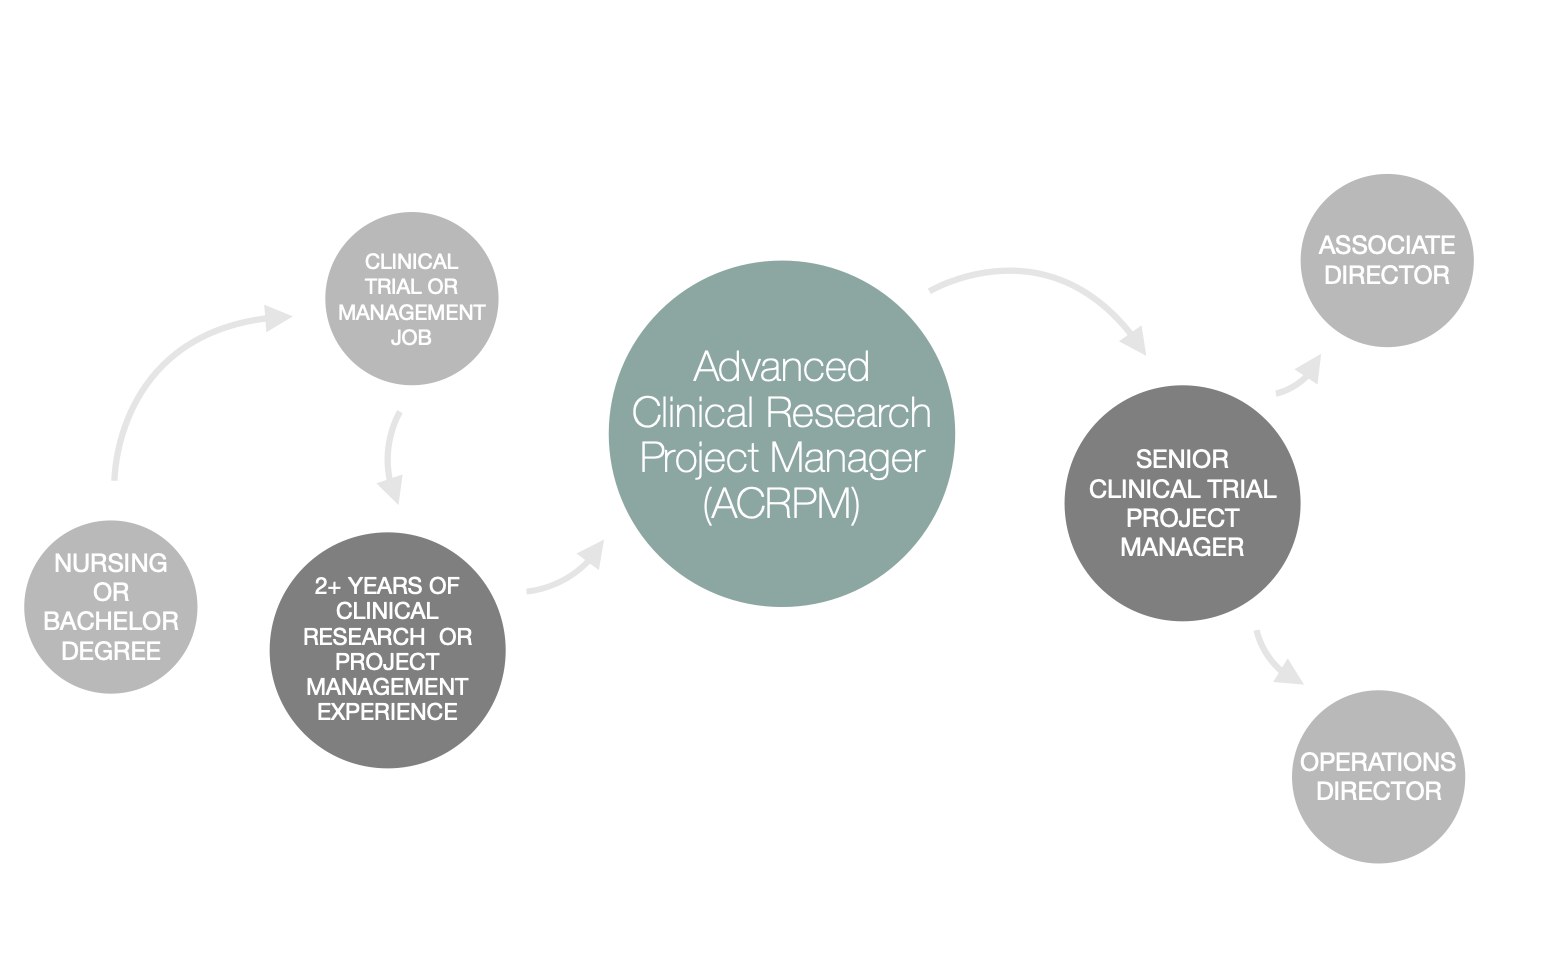 Clinical Research Project Manager